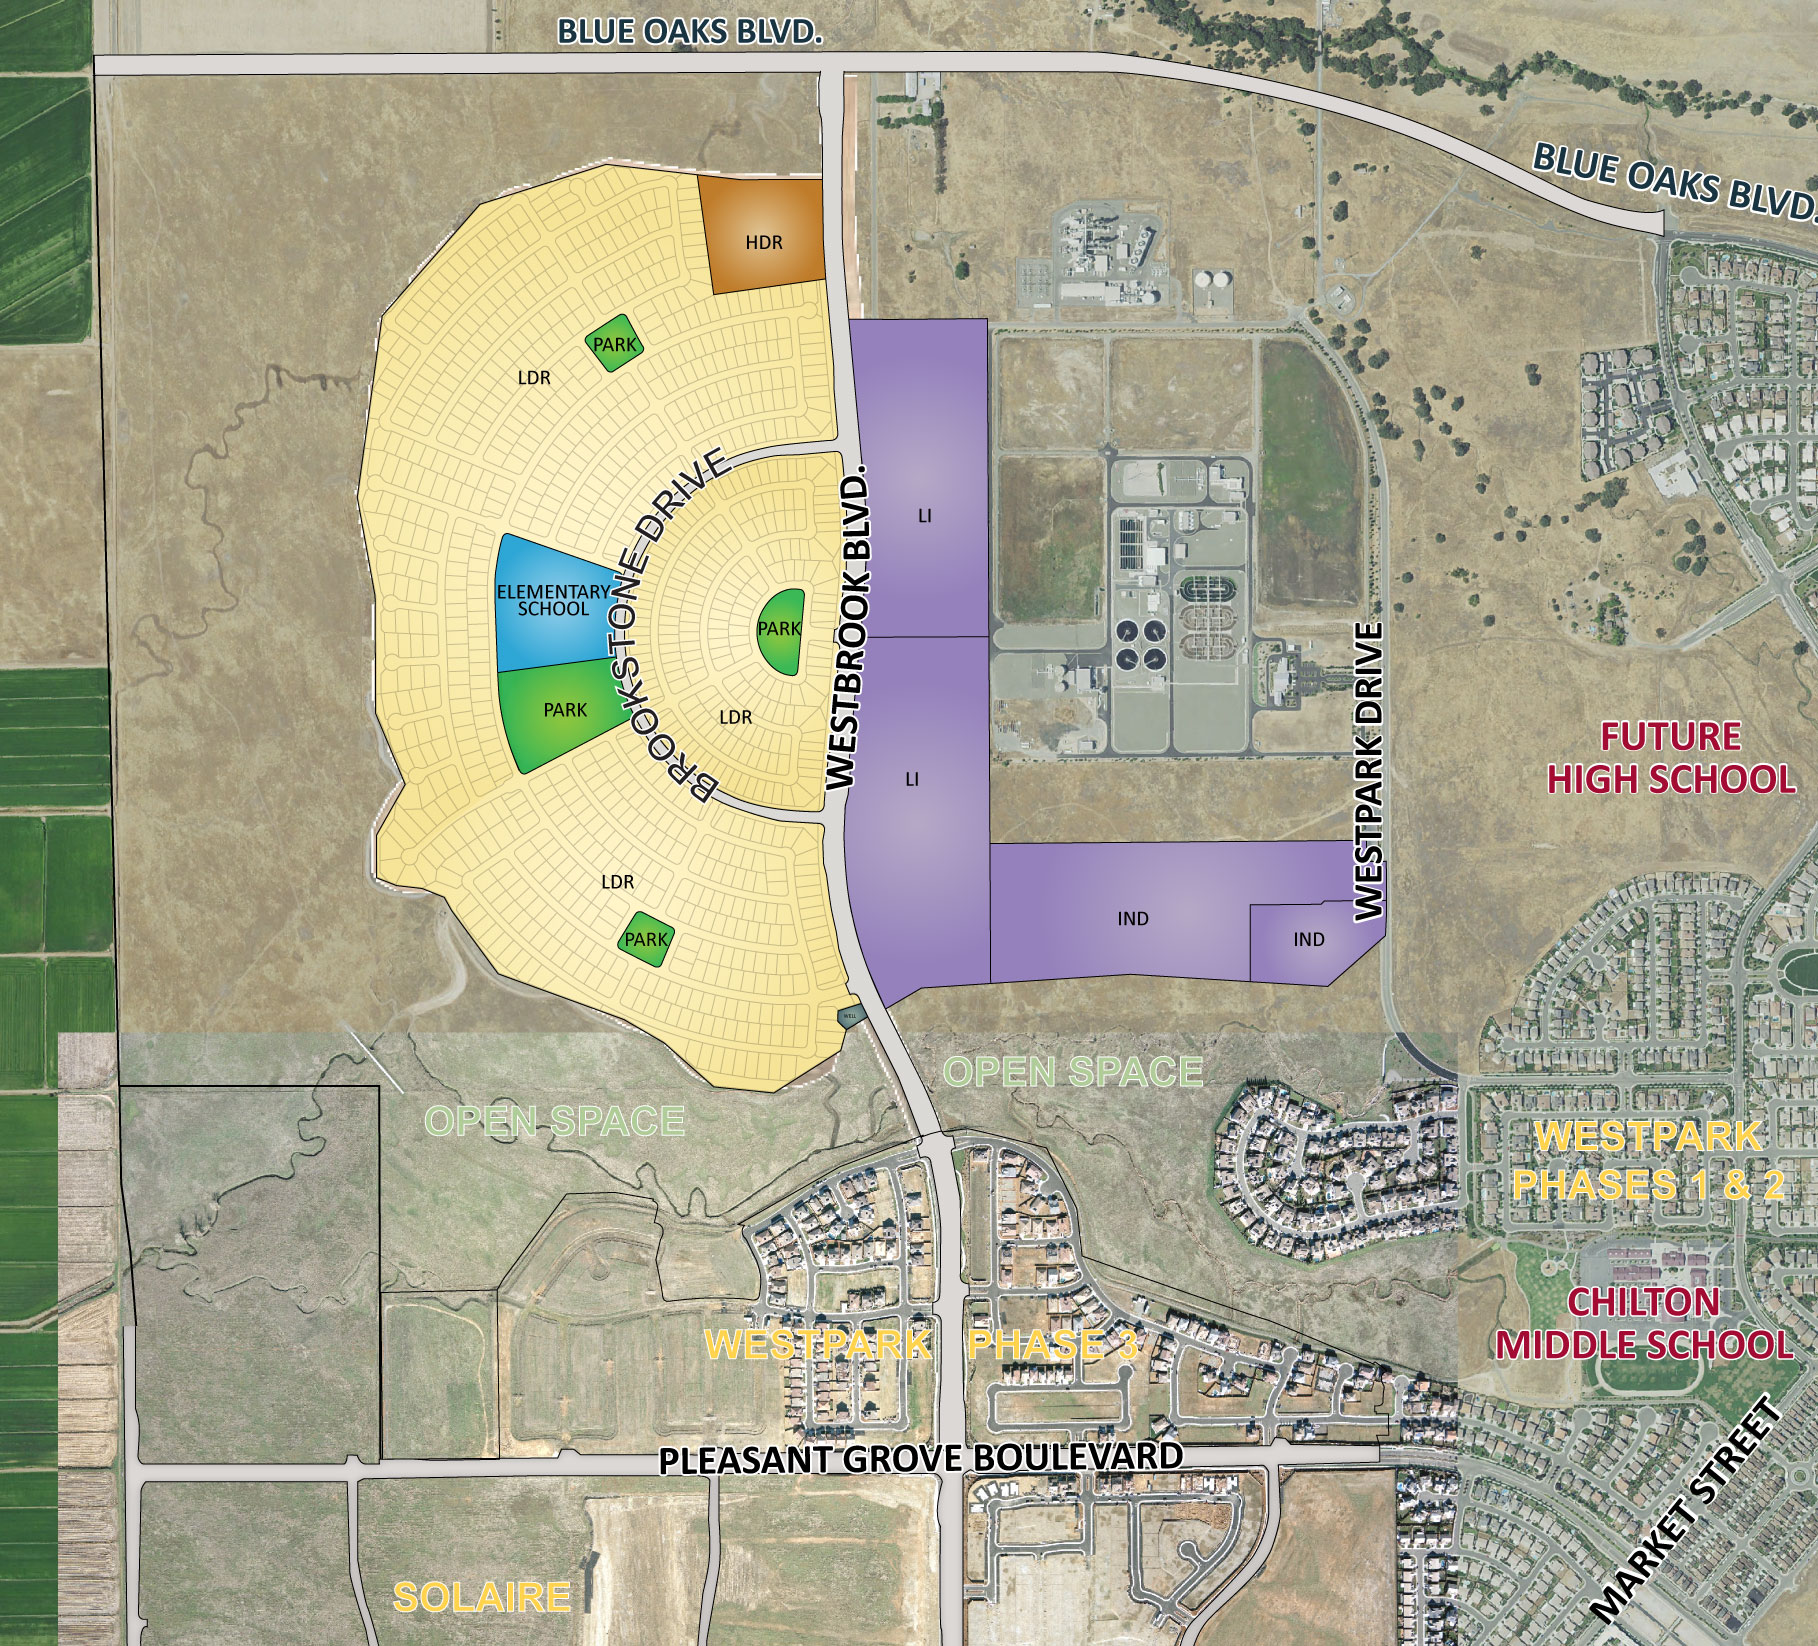 Westpark Phase 4 Roseville Residential Community Development